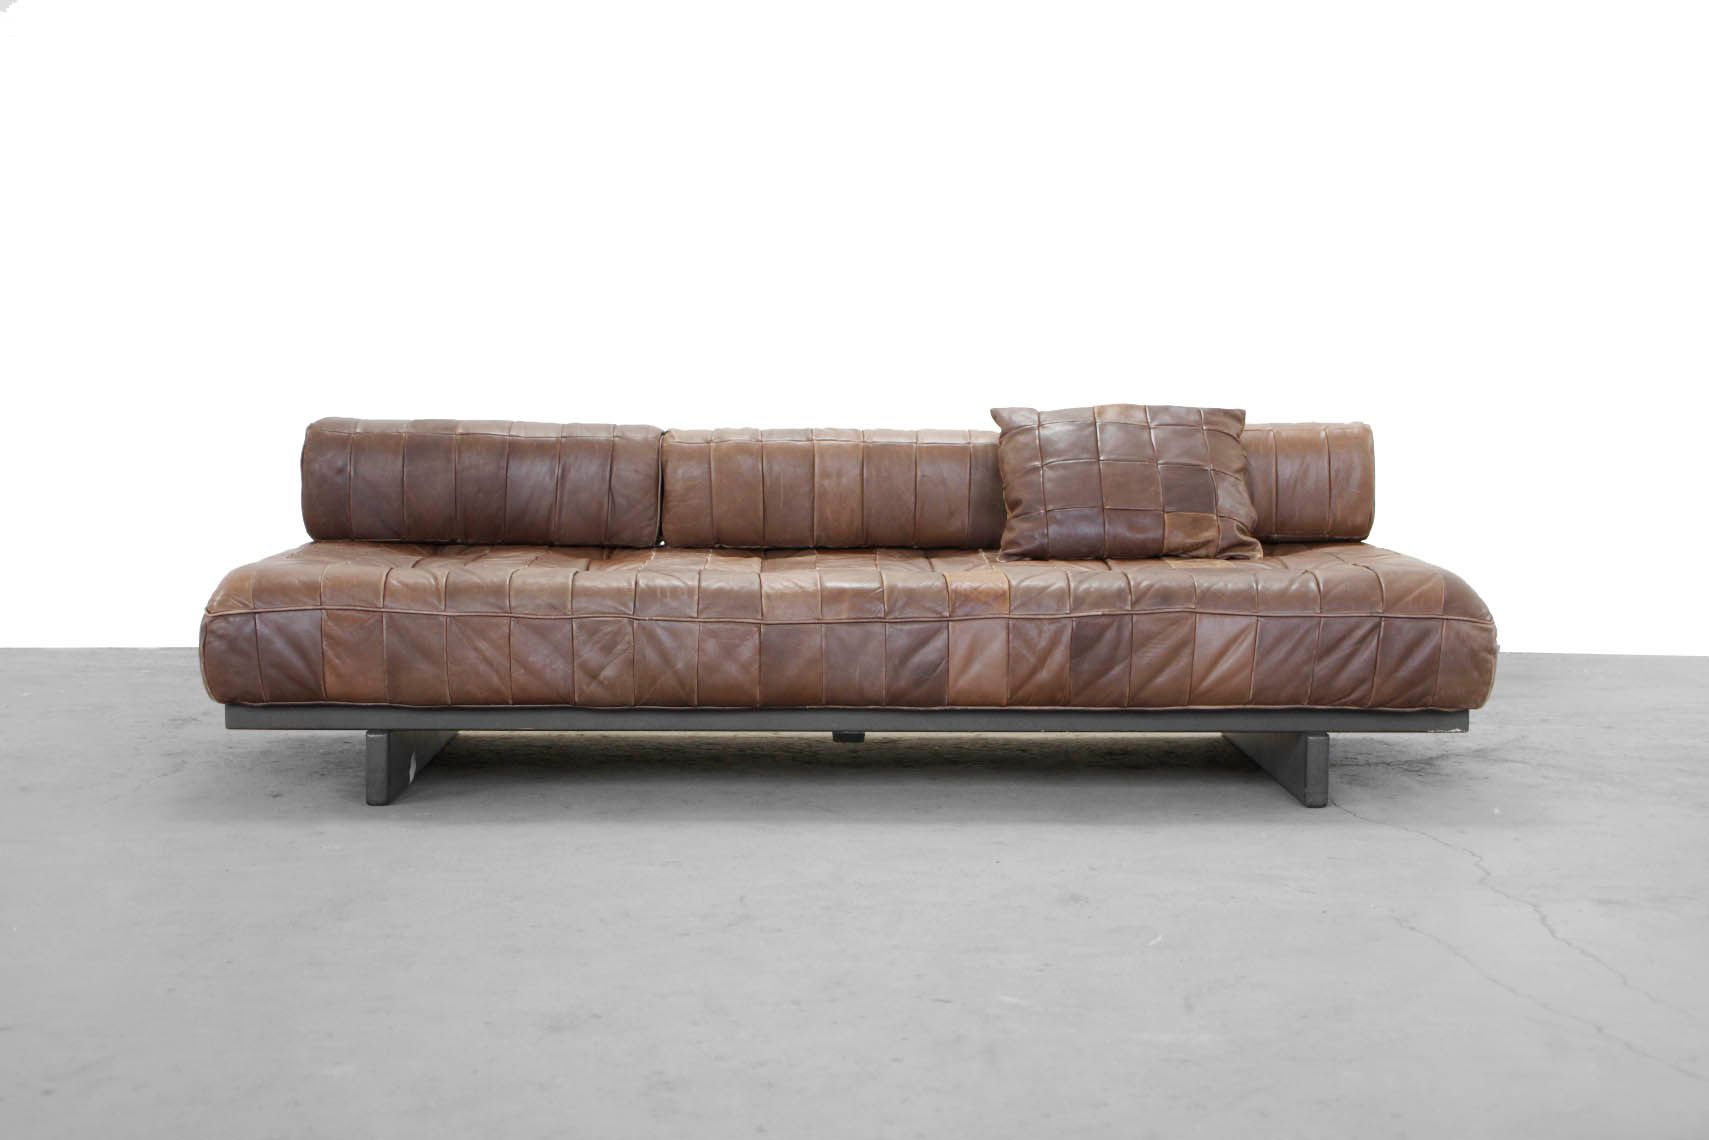 Mid Century Sofa Daybed By De Sede 1972 For Sale At Pamono